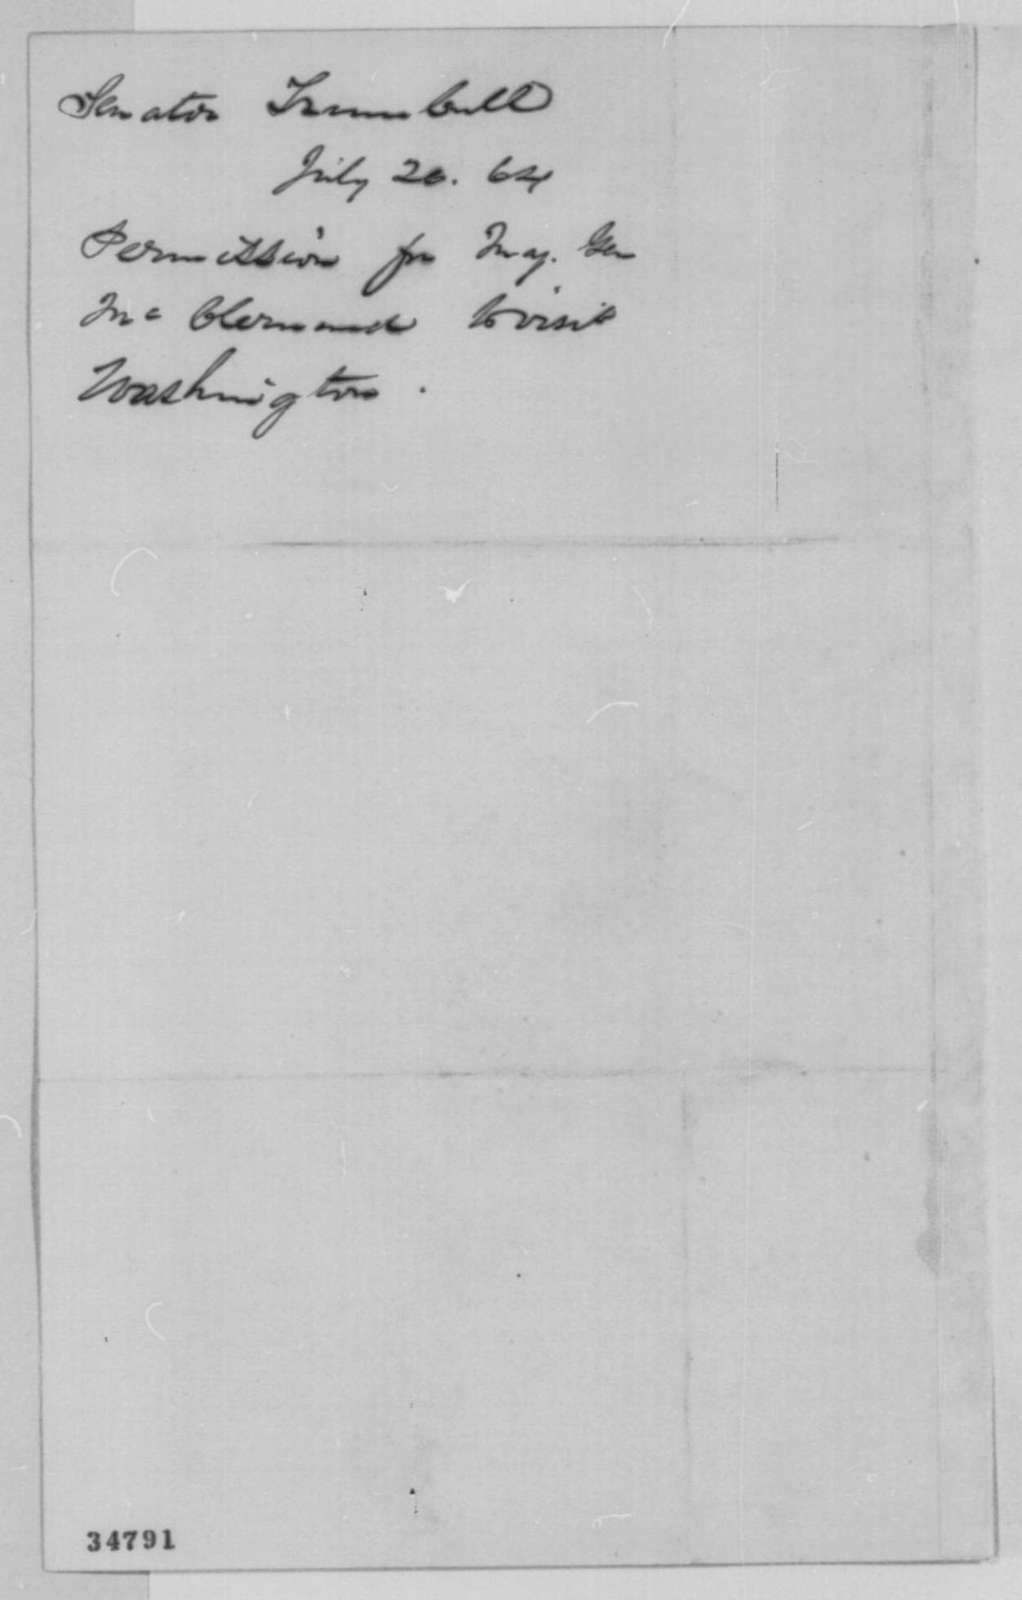 Lyman Trumbull to Abraham Lincoln, Tuesday, July 26, 1864  (Permission for Gen. McClernand to visit Washington)